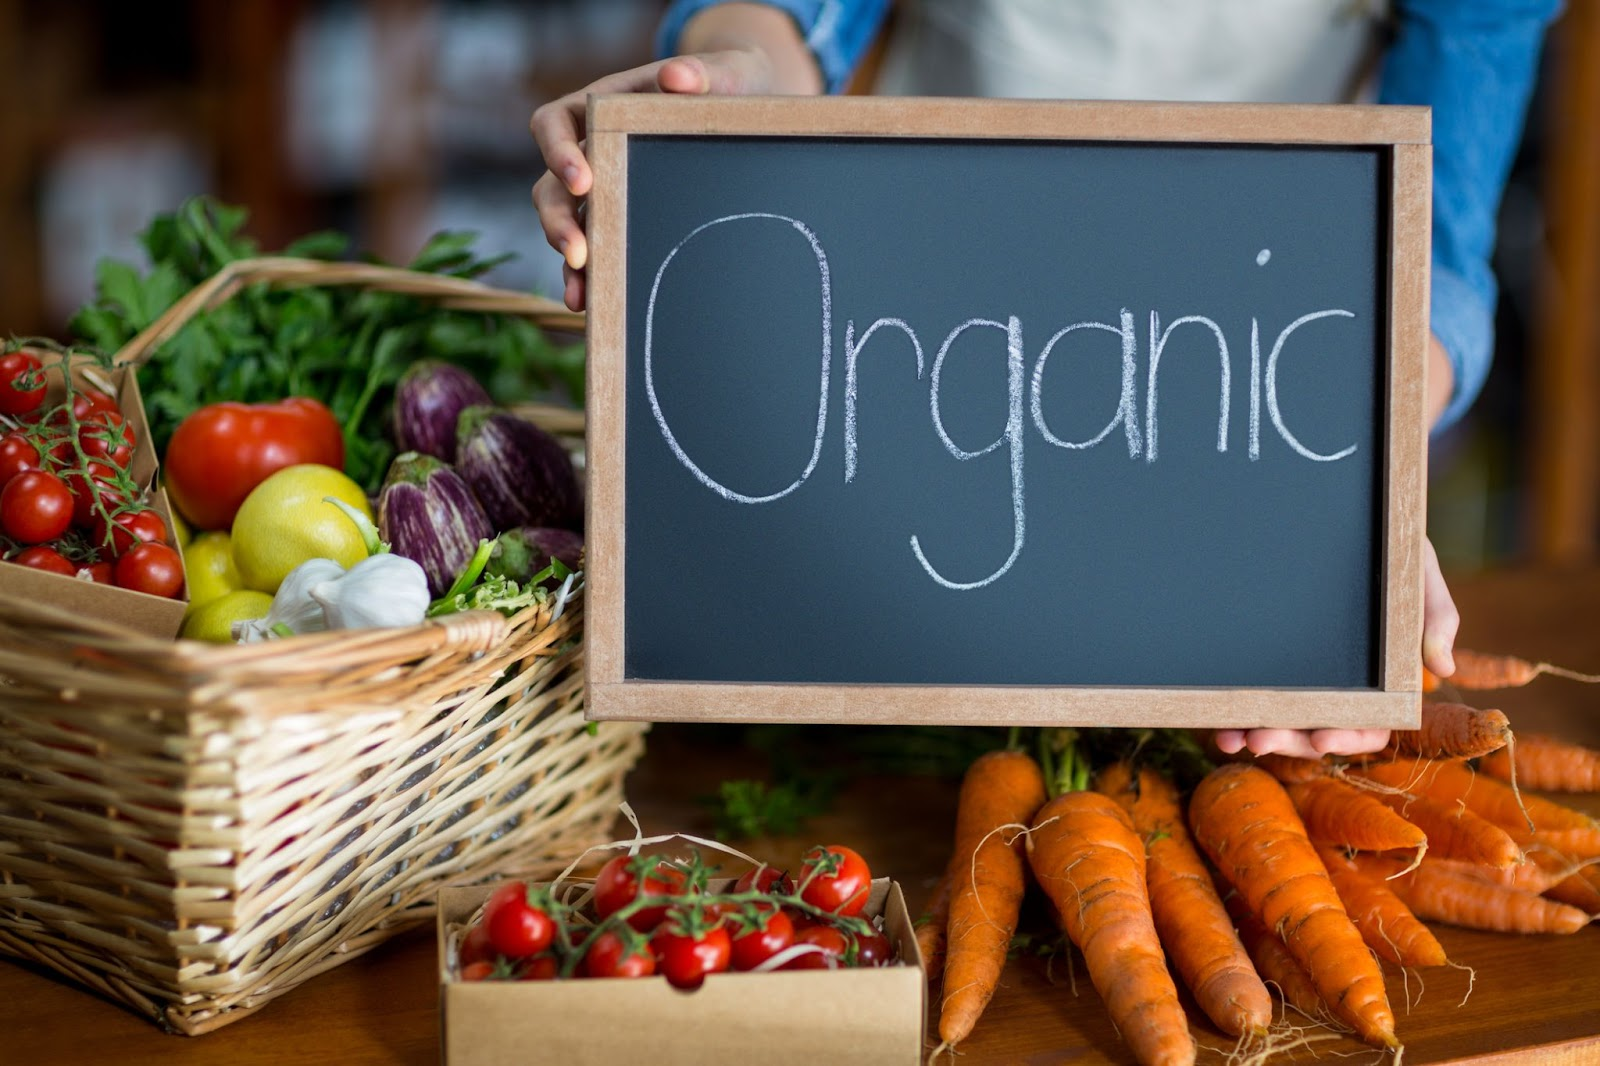 It is wise to switch to organic foods